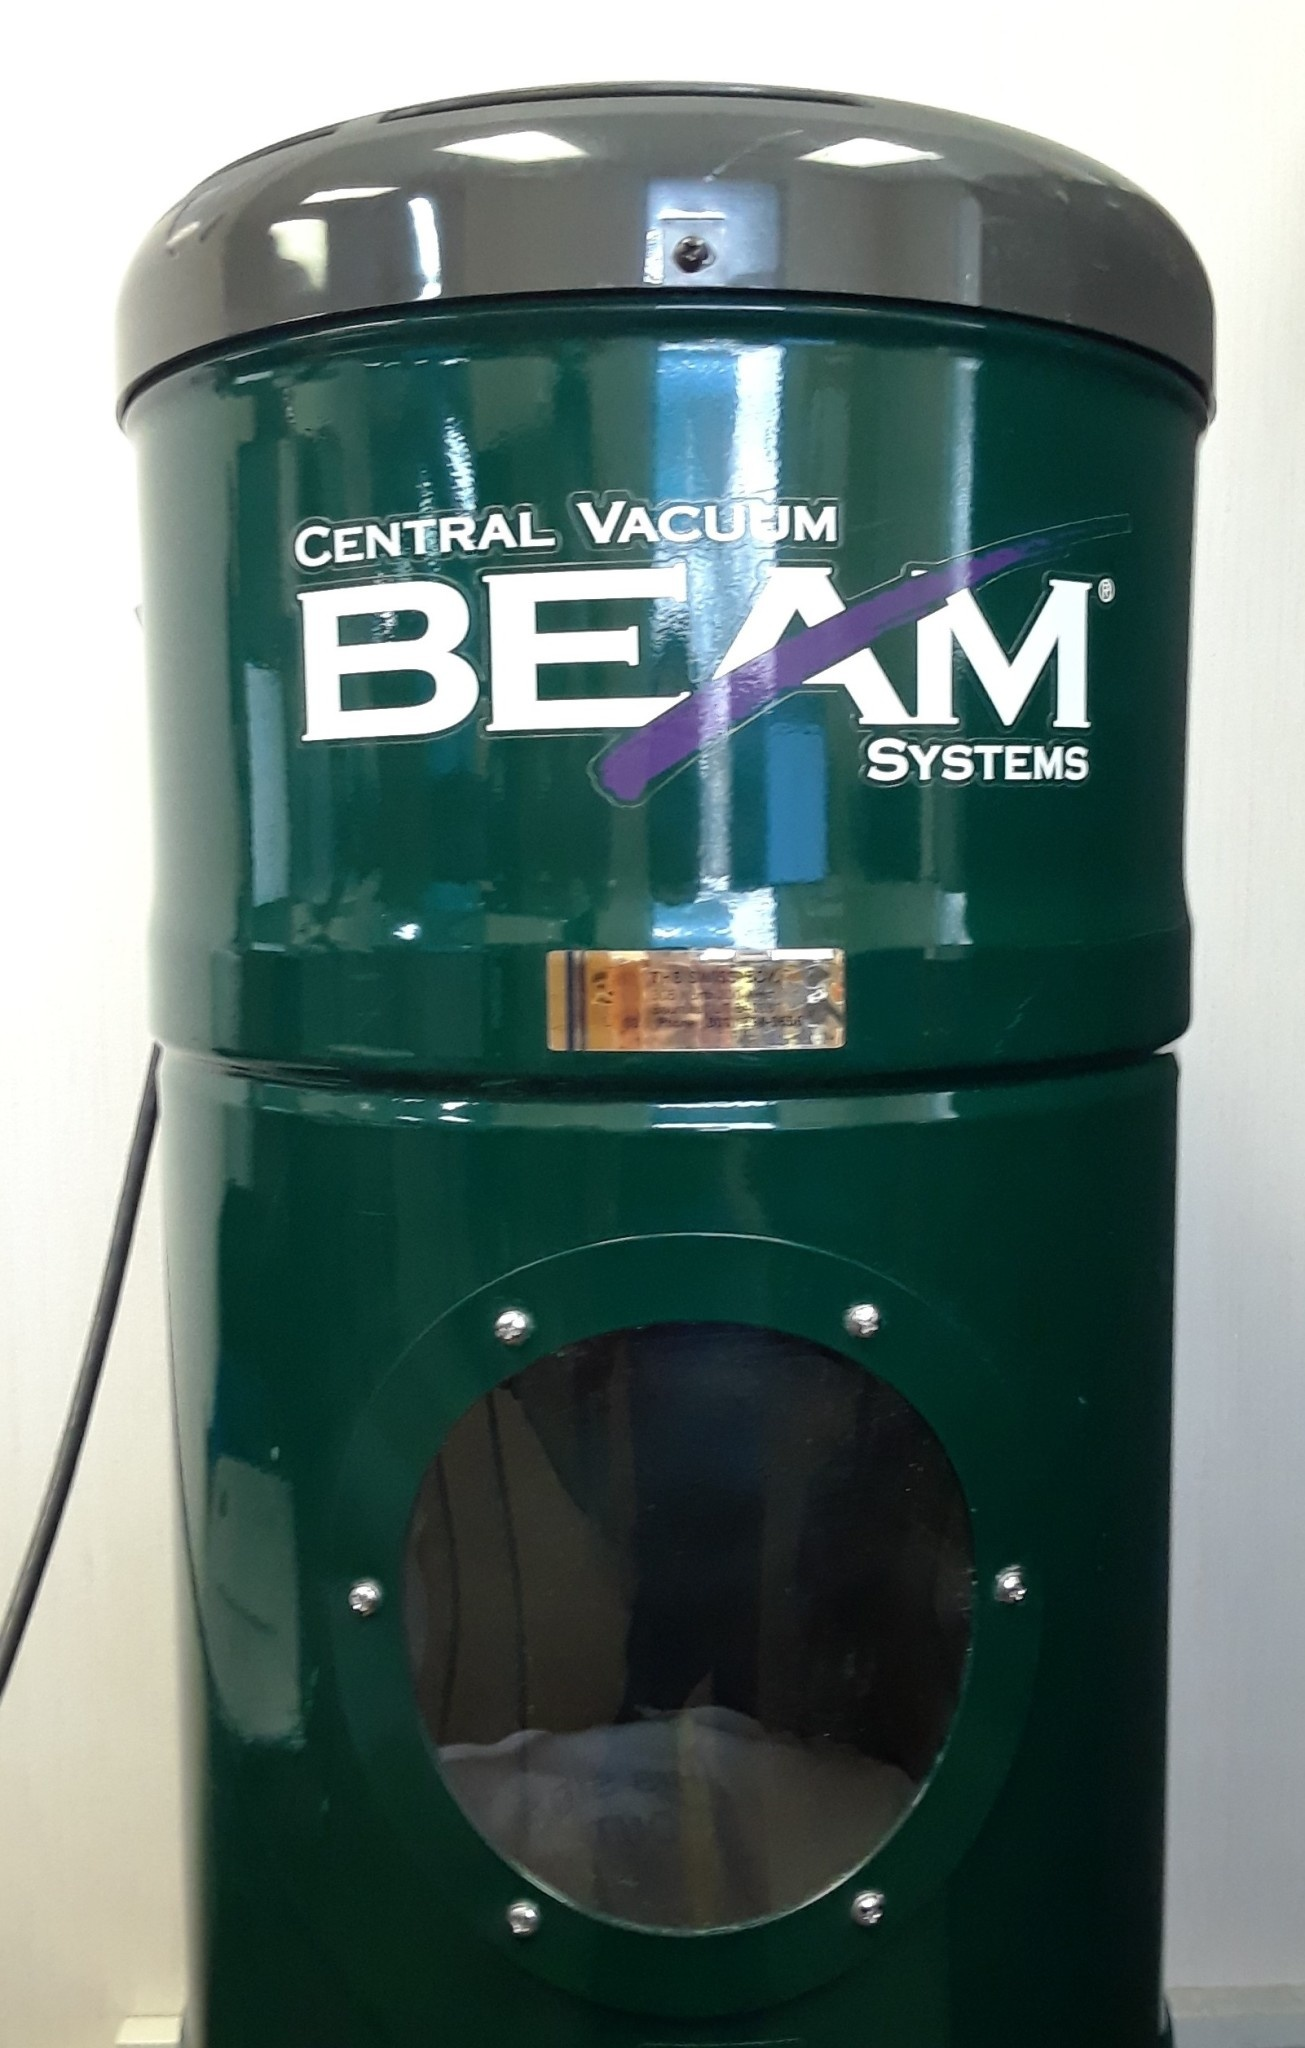 BEAM Refurbished Beam Serenity 2250 Power Unit - Rec. 7,000 or less sq Feet